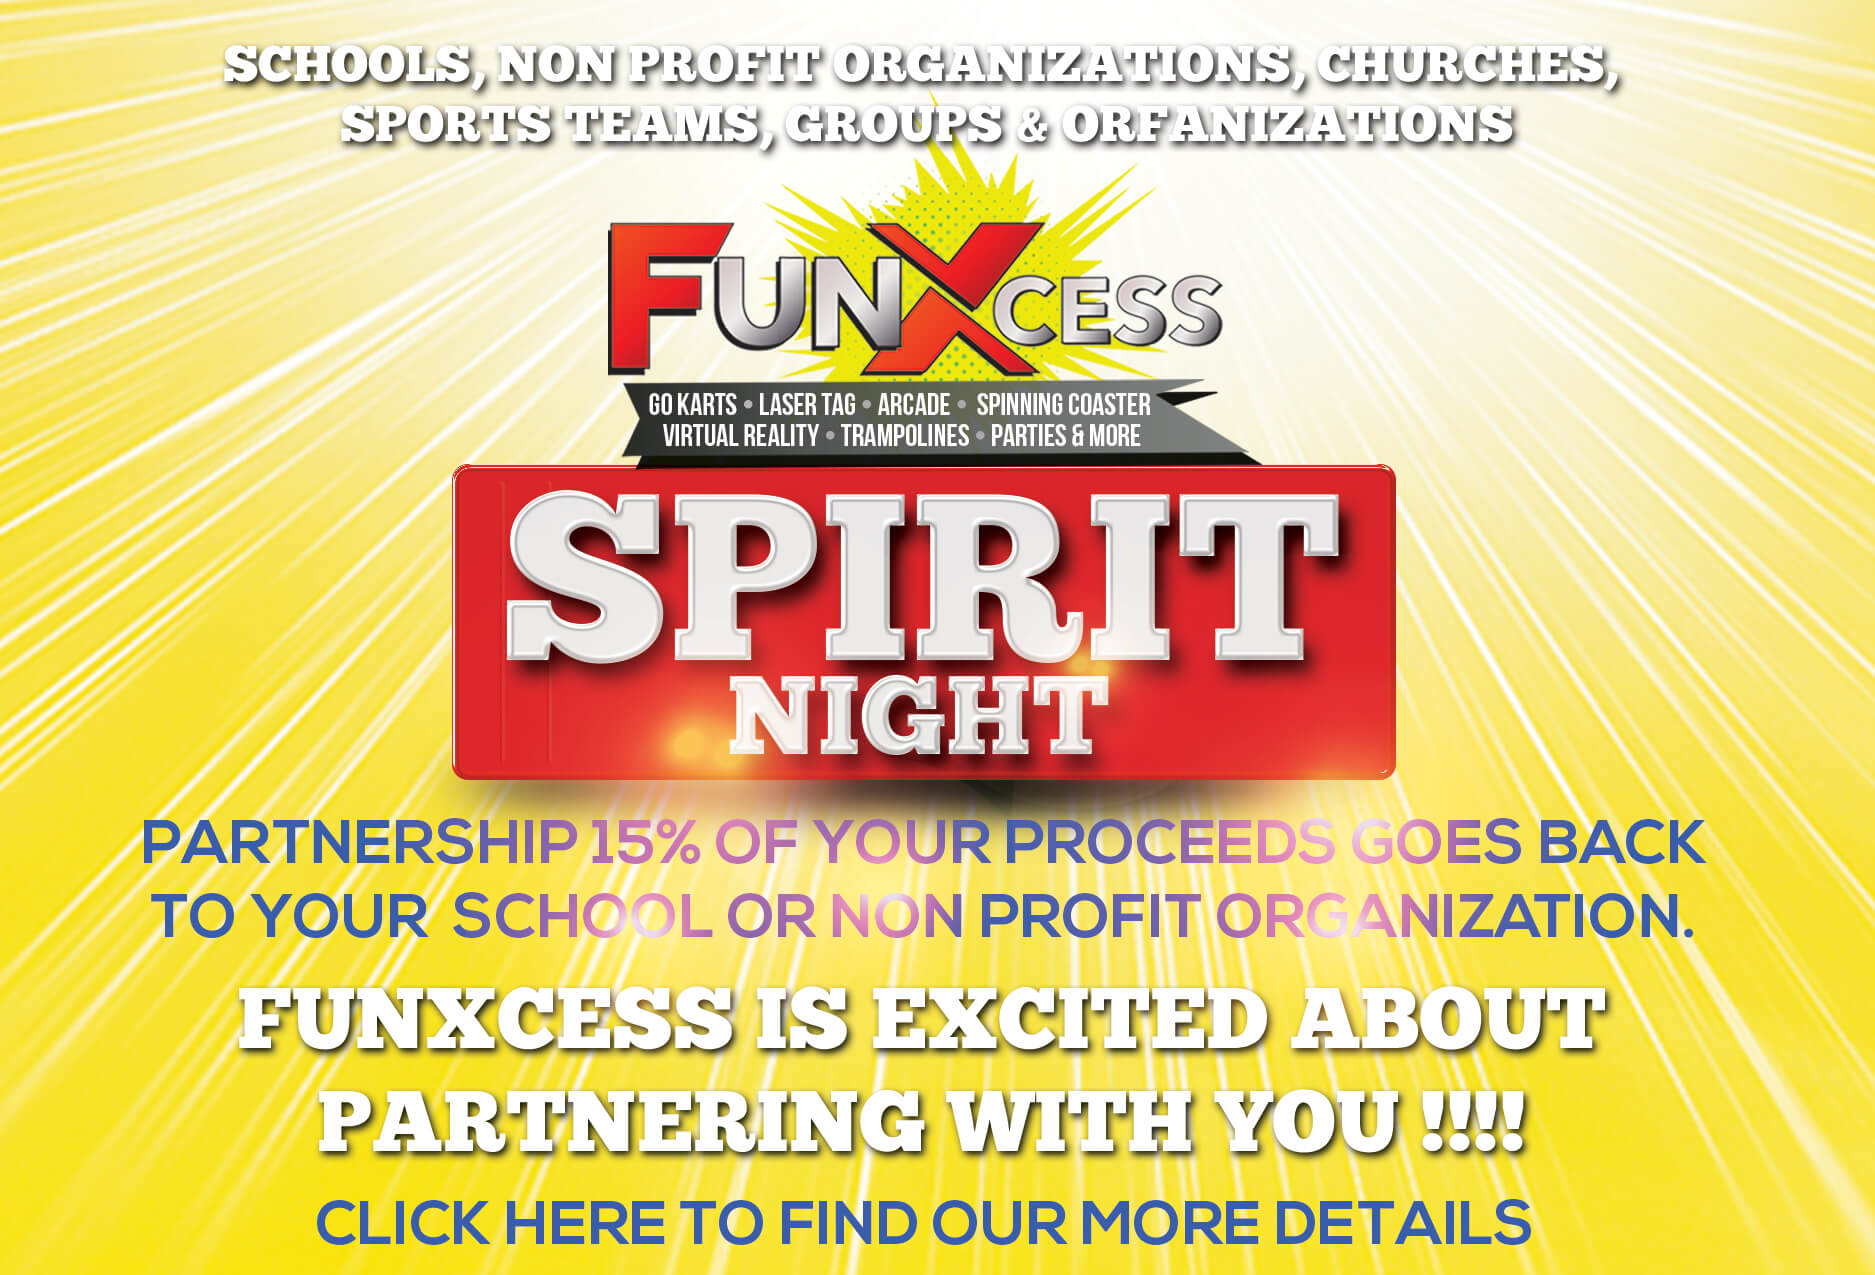 FunXcess-Spirit_NIght.jpg